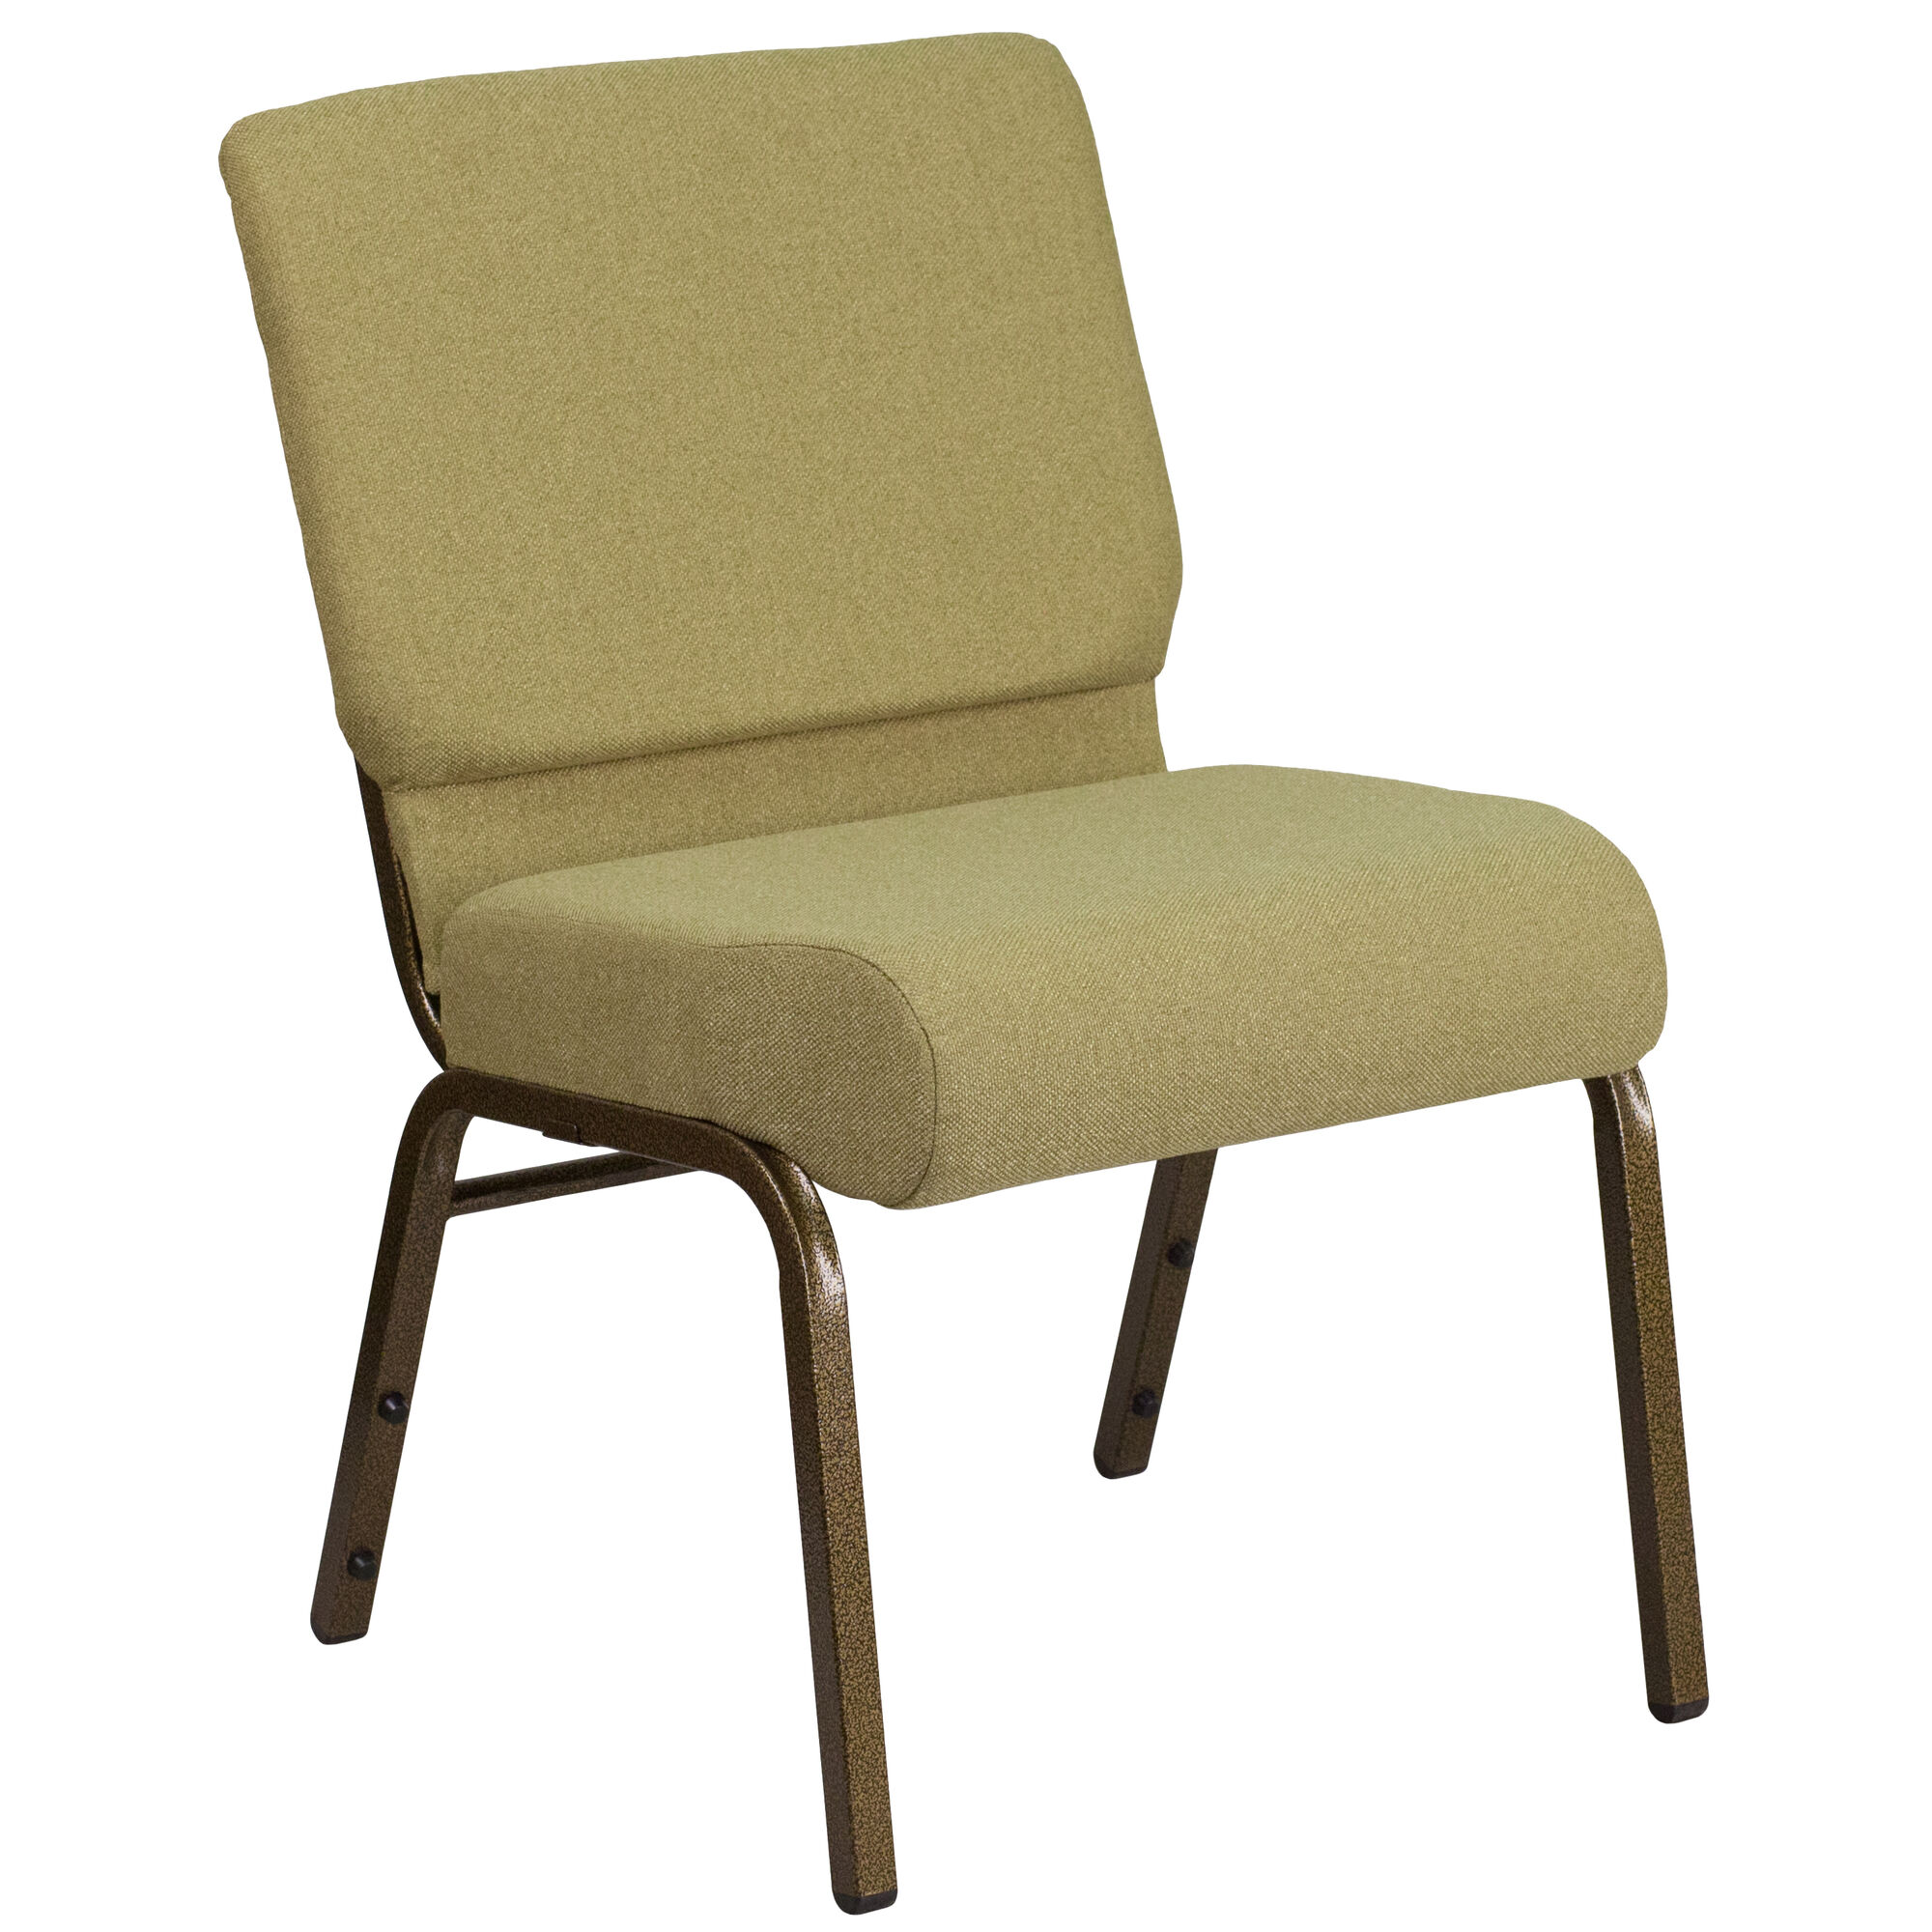 chapel for church finish ascension thick peacehaven of the chair from product chairs sale varnish